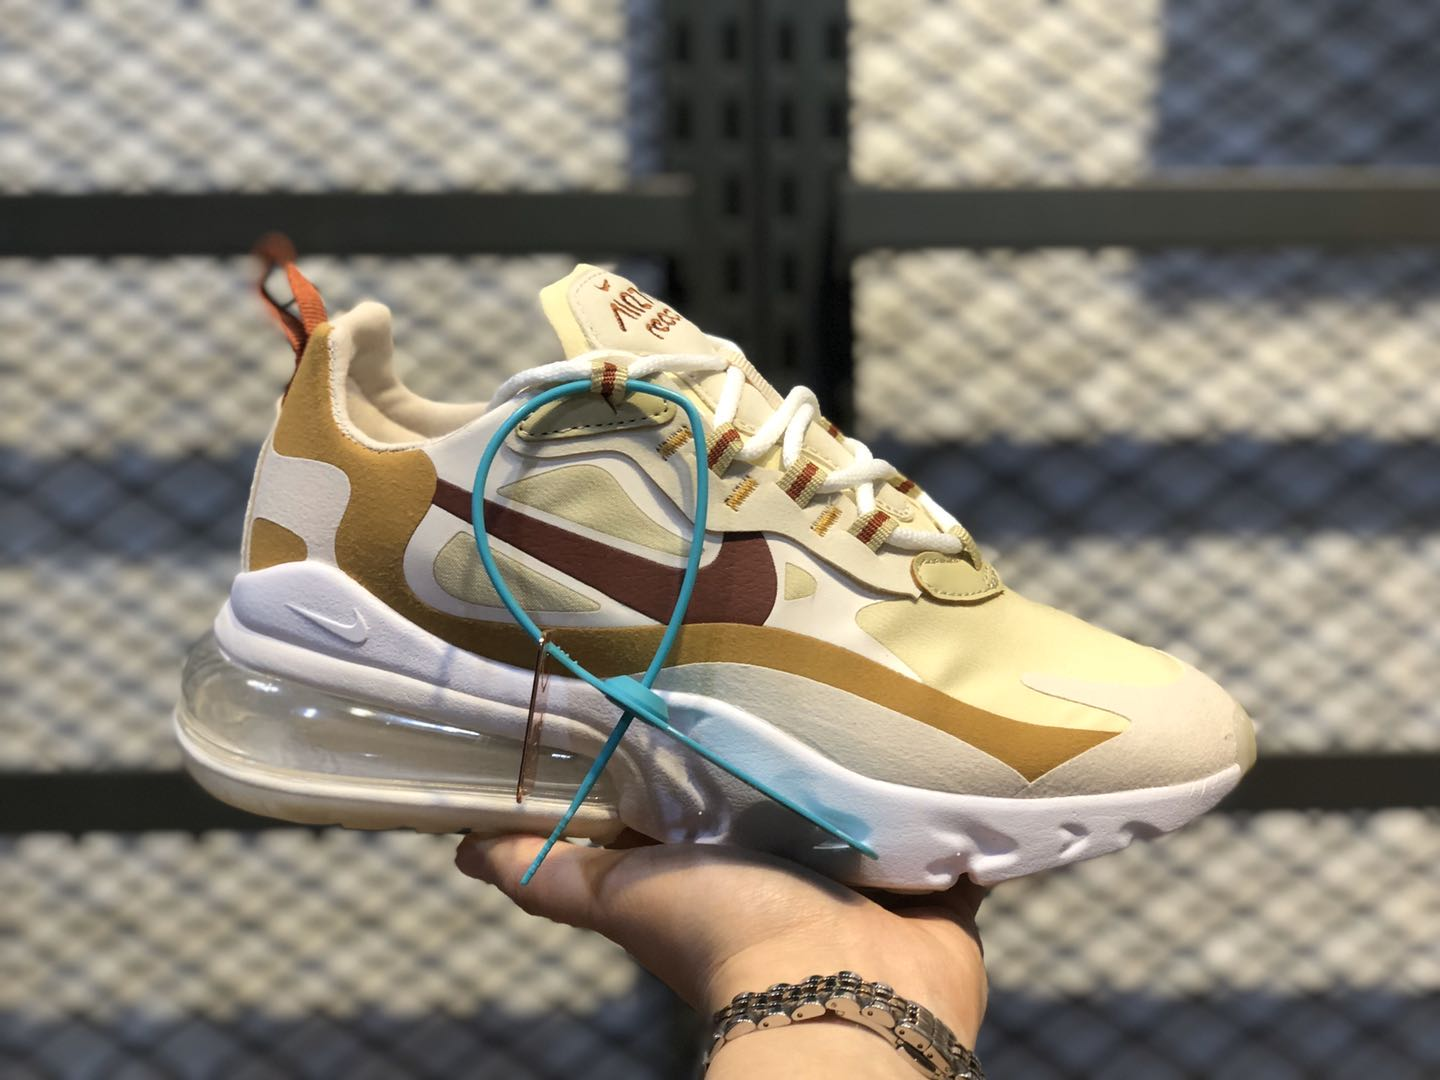 Nike Air Max 270 React Team Gold/Cinnamon-Club Gold AT6174-700